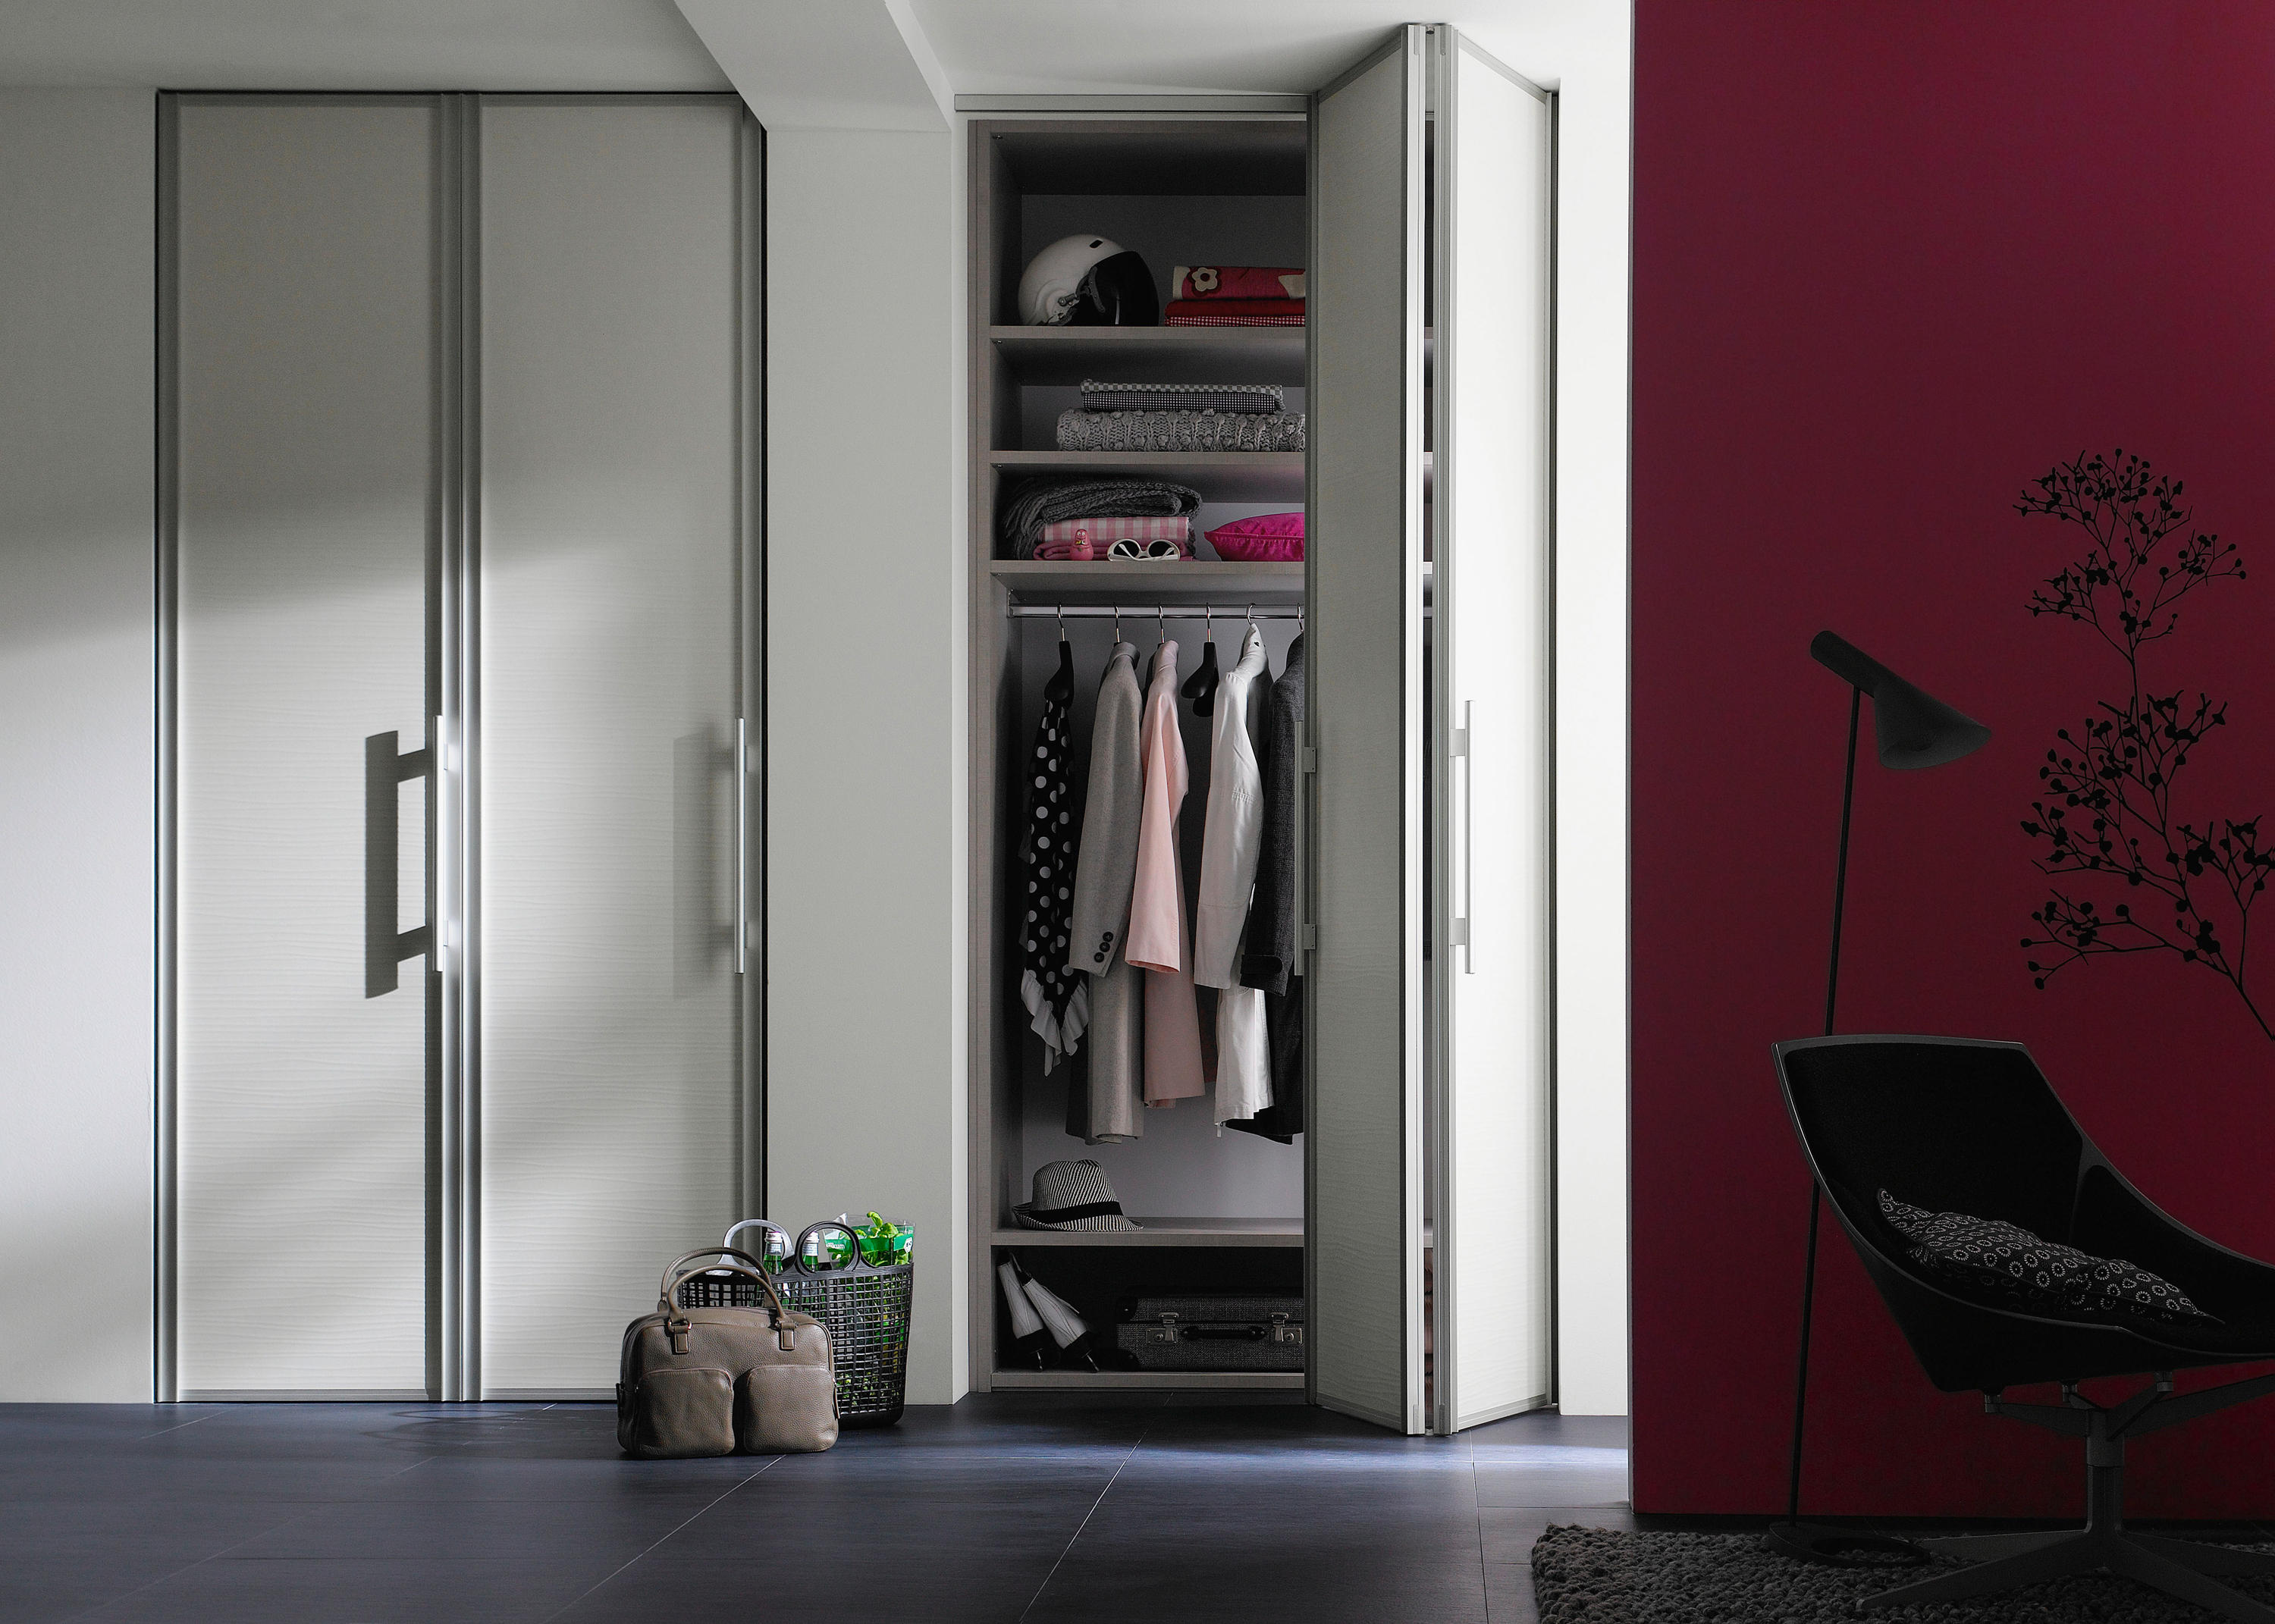 creative inspirations to doors luxurius on home closet alternatives with decor